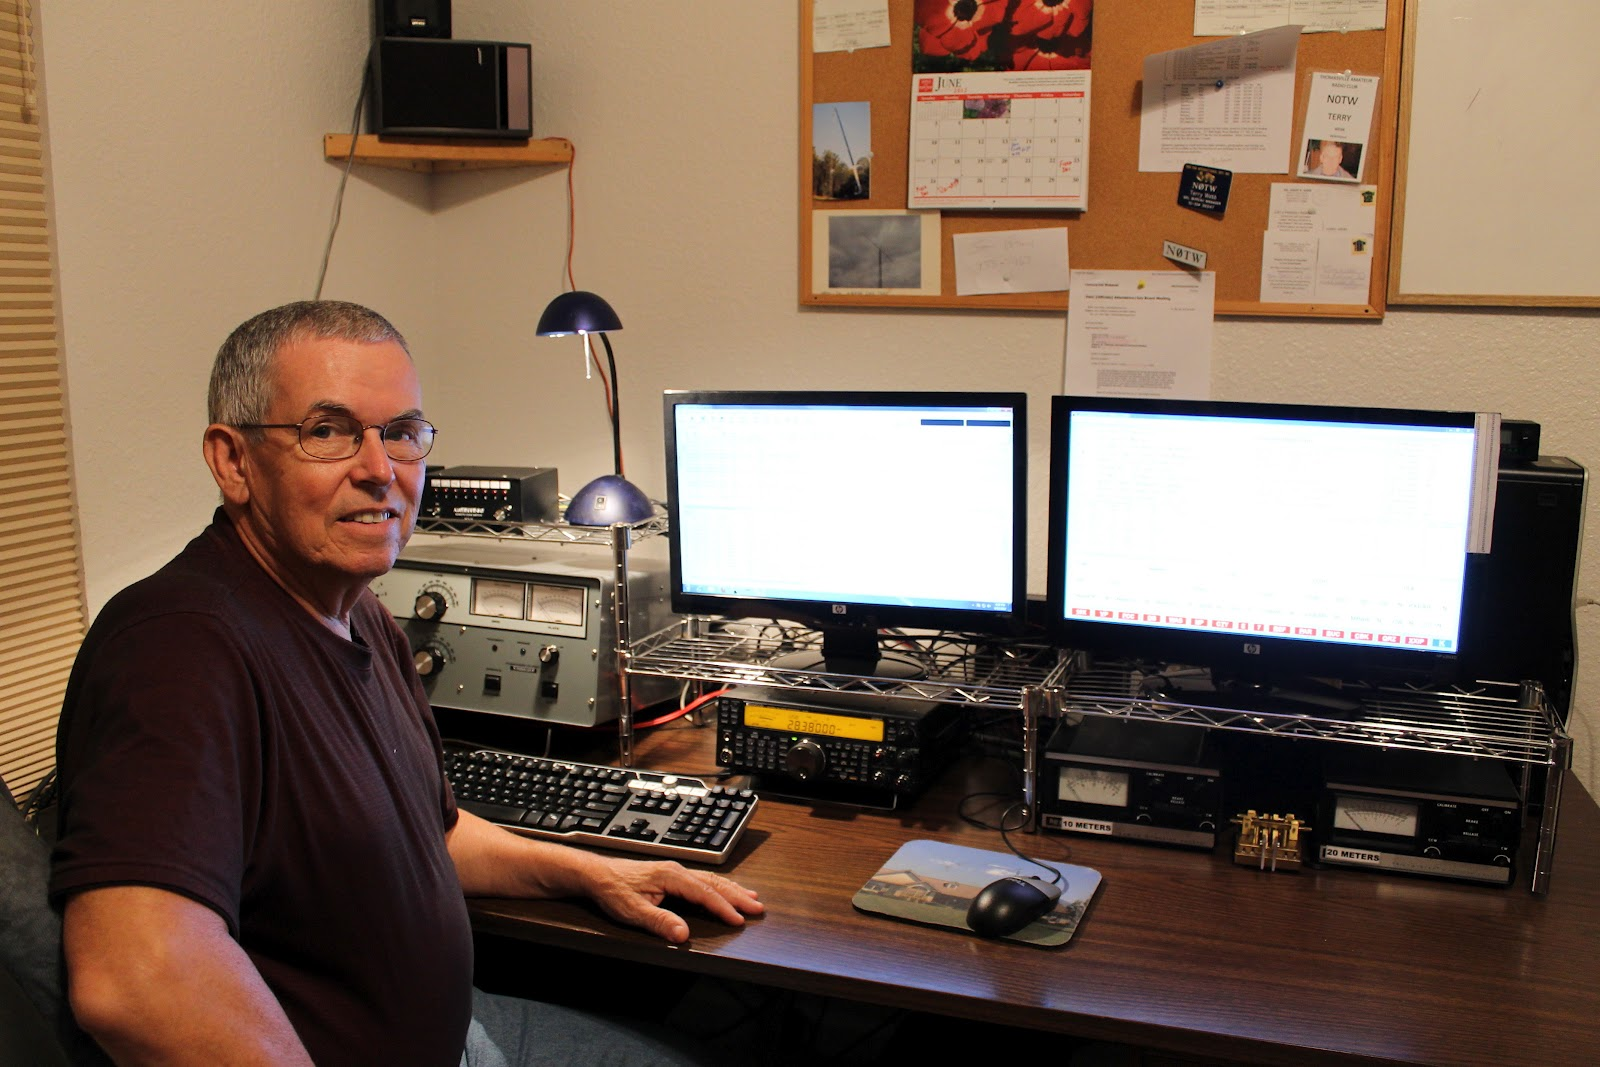 Amateur Radio Station Wb4omm: Welcome To Our Home: Updated Ham Radio Station